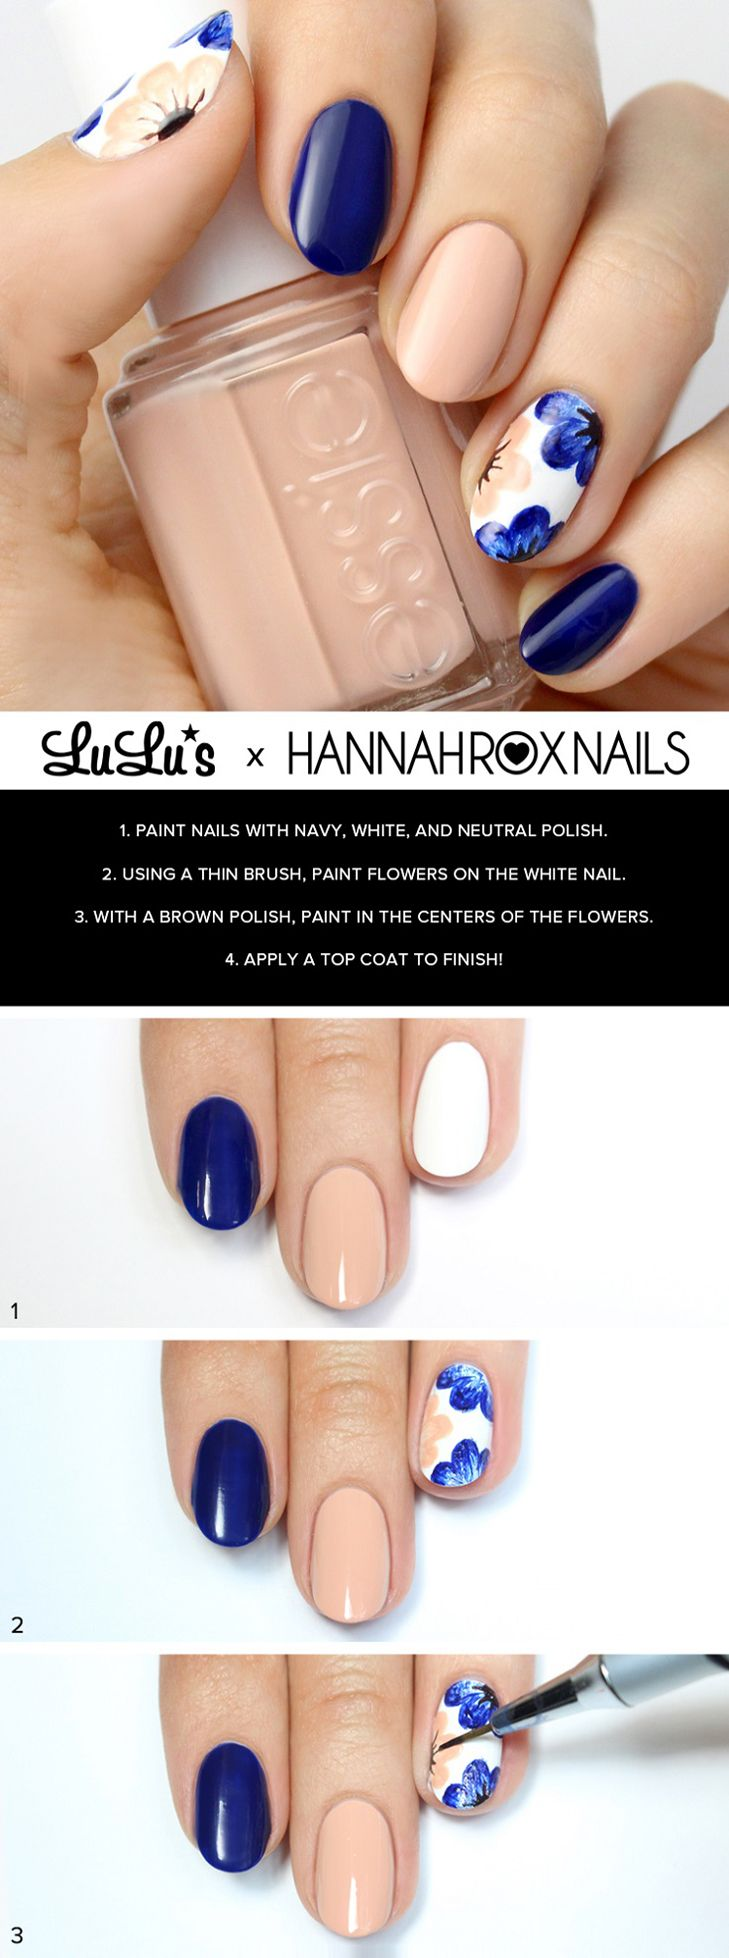 Nail Art Ideas shamrock nail art tutorial : 244 best NAILS images on Pinterest | Make up, Manicure ideas and Nail